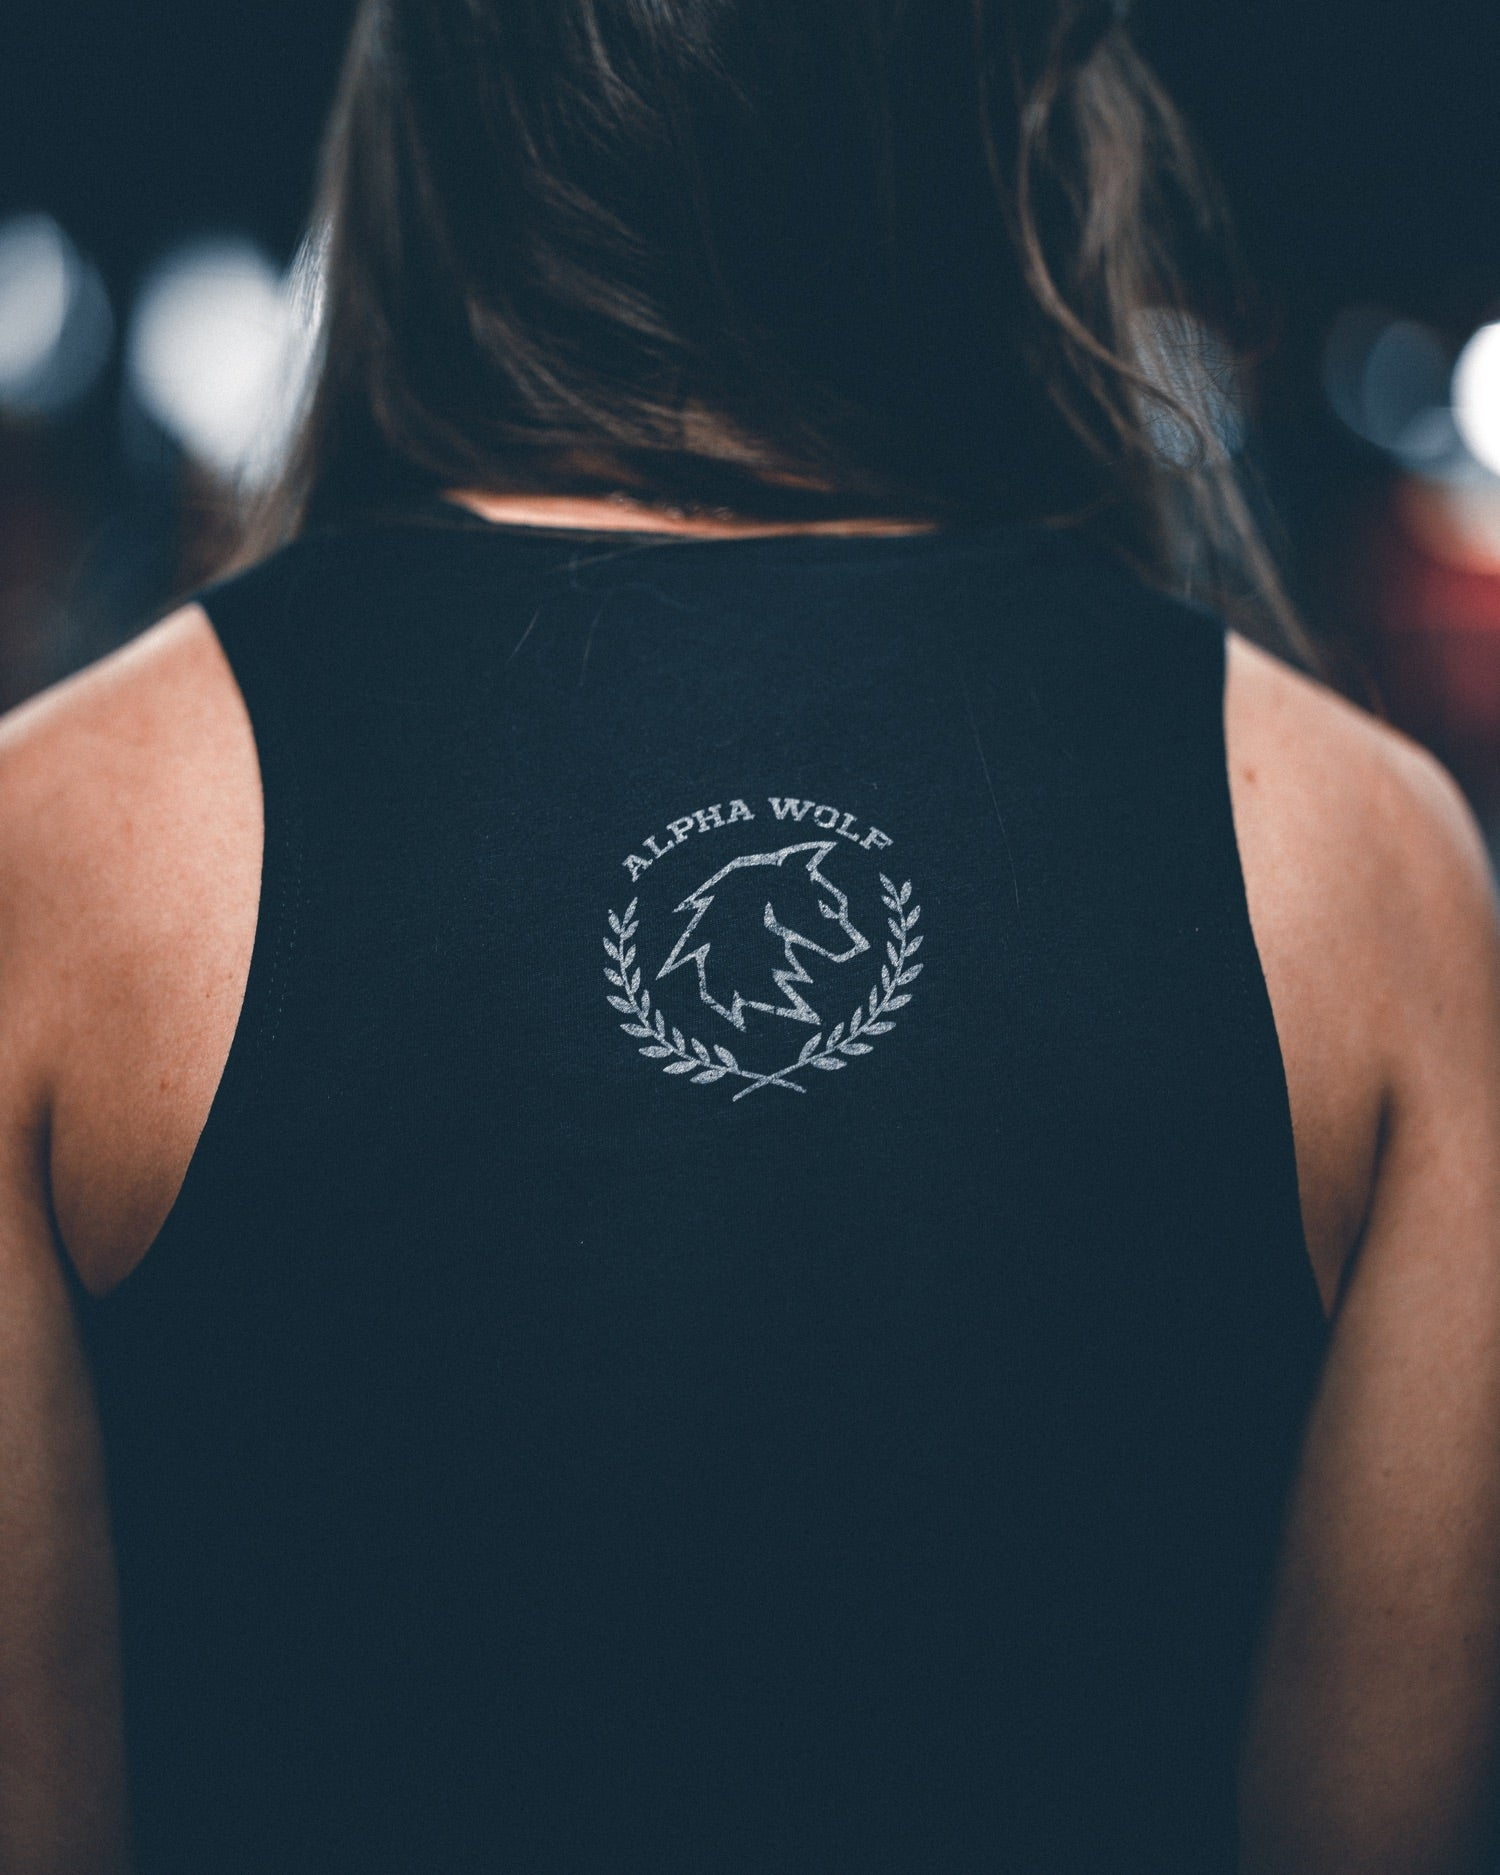 Women's AlphaWolf Cropped Tank Top